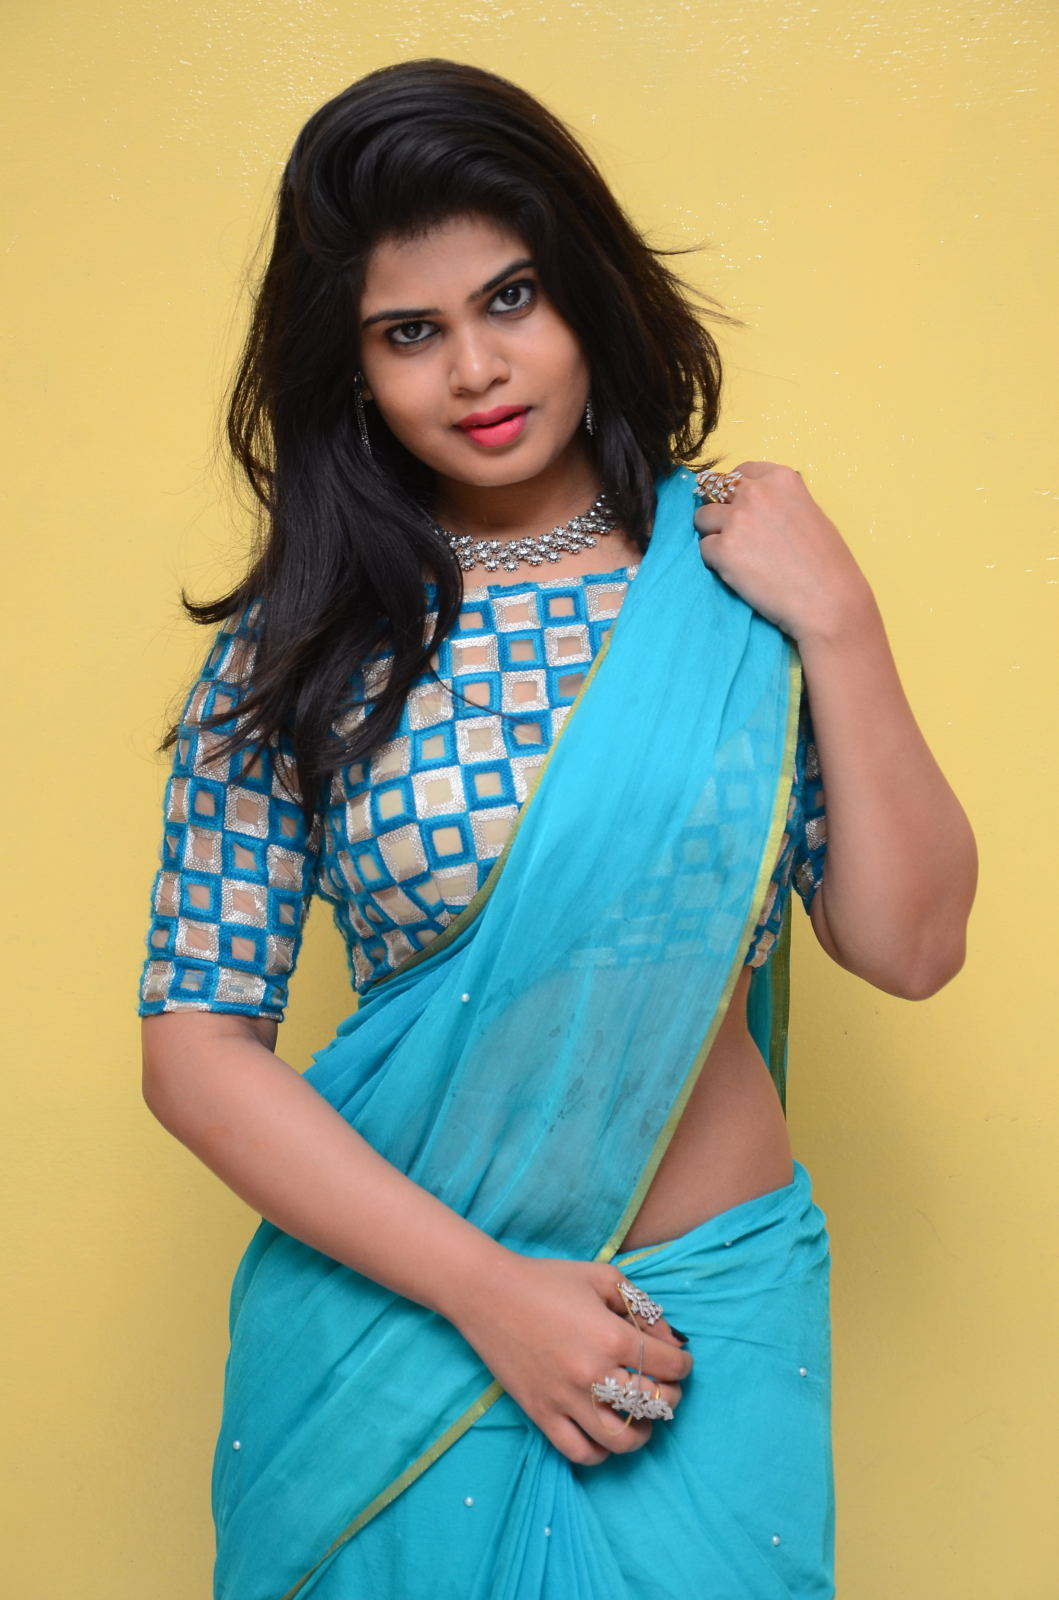 alekhya Brand New Sexy Photo Stills of Alekhya | Tollywood | Actresses Alekhya HOT pics 100